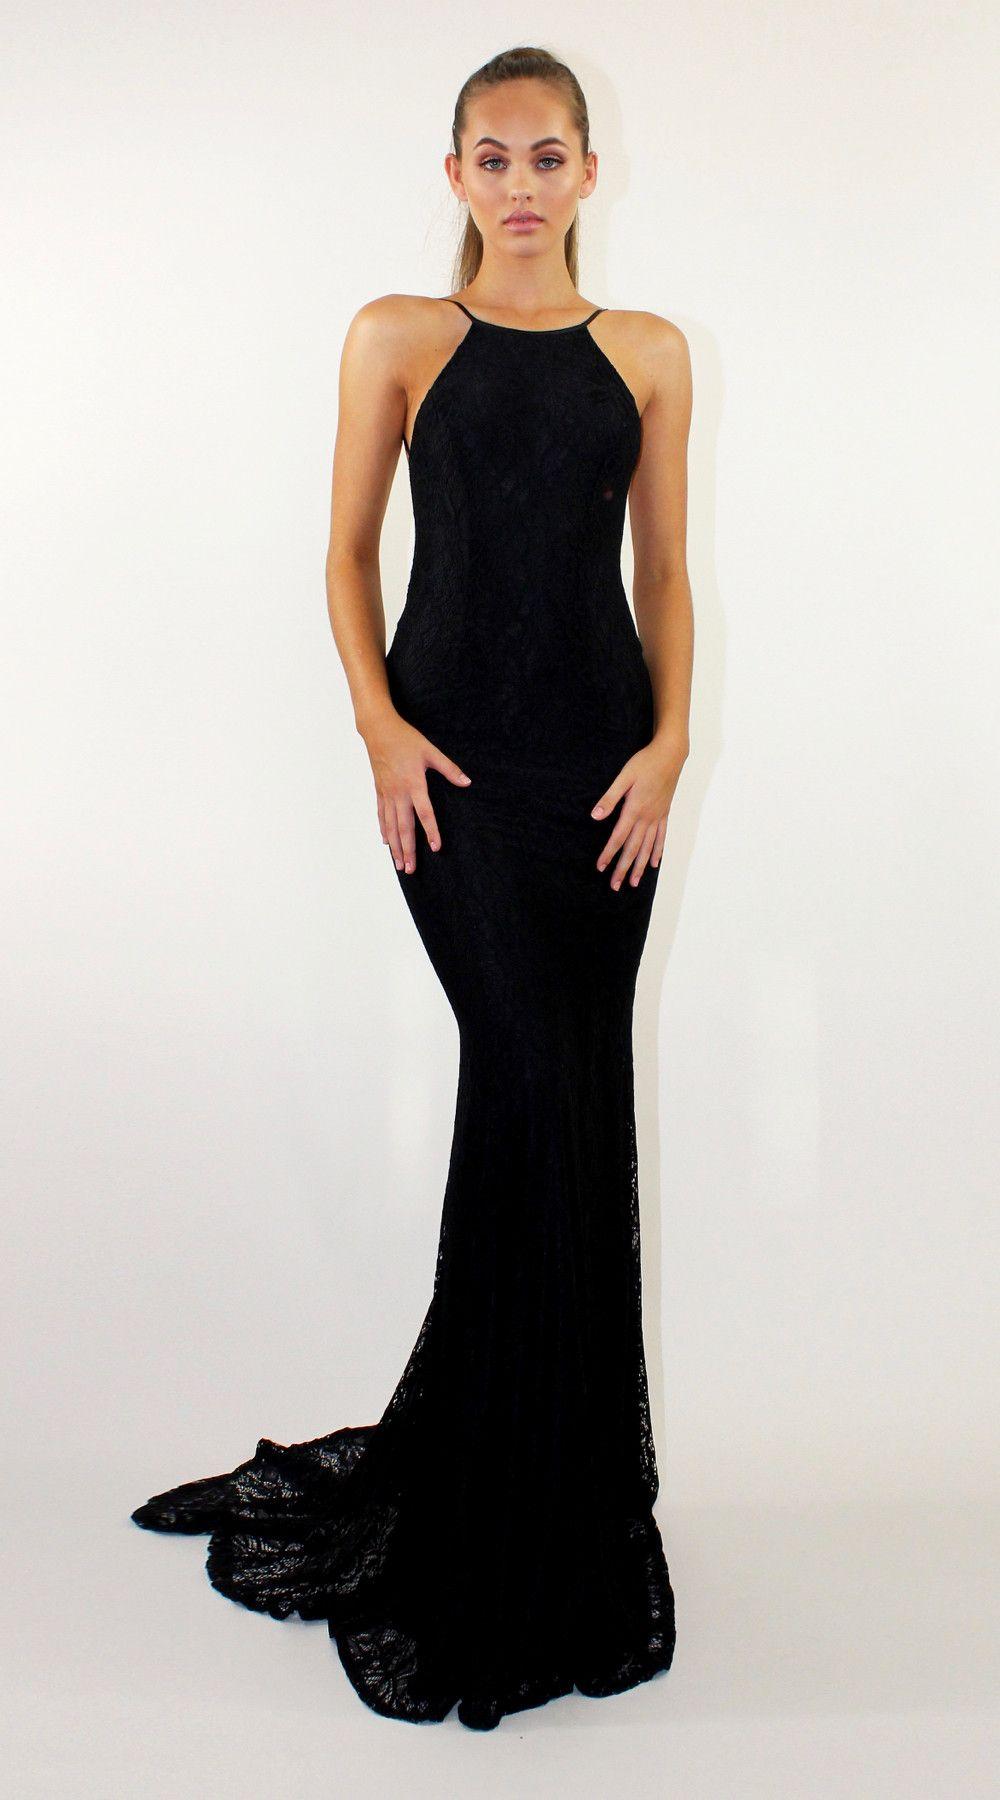 Reckless Black | evening gowns | Pinterest | Fishtail, Gowns and Prom